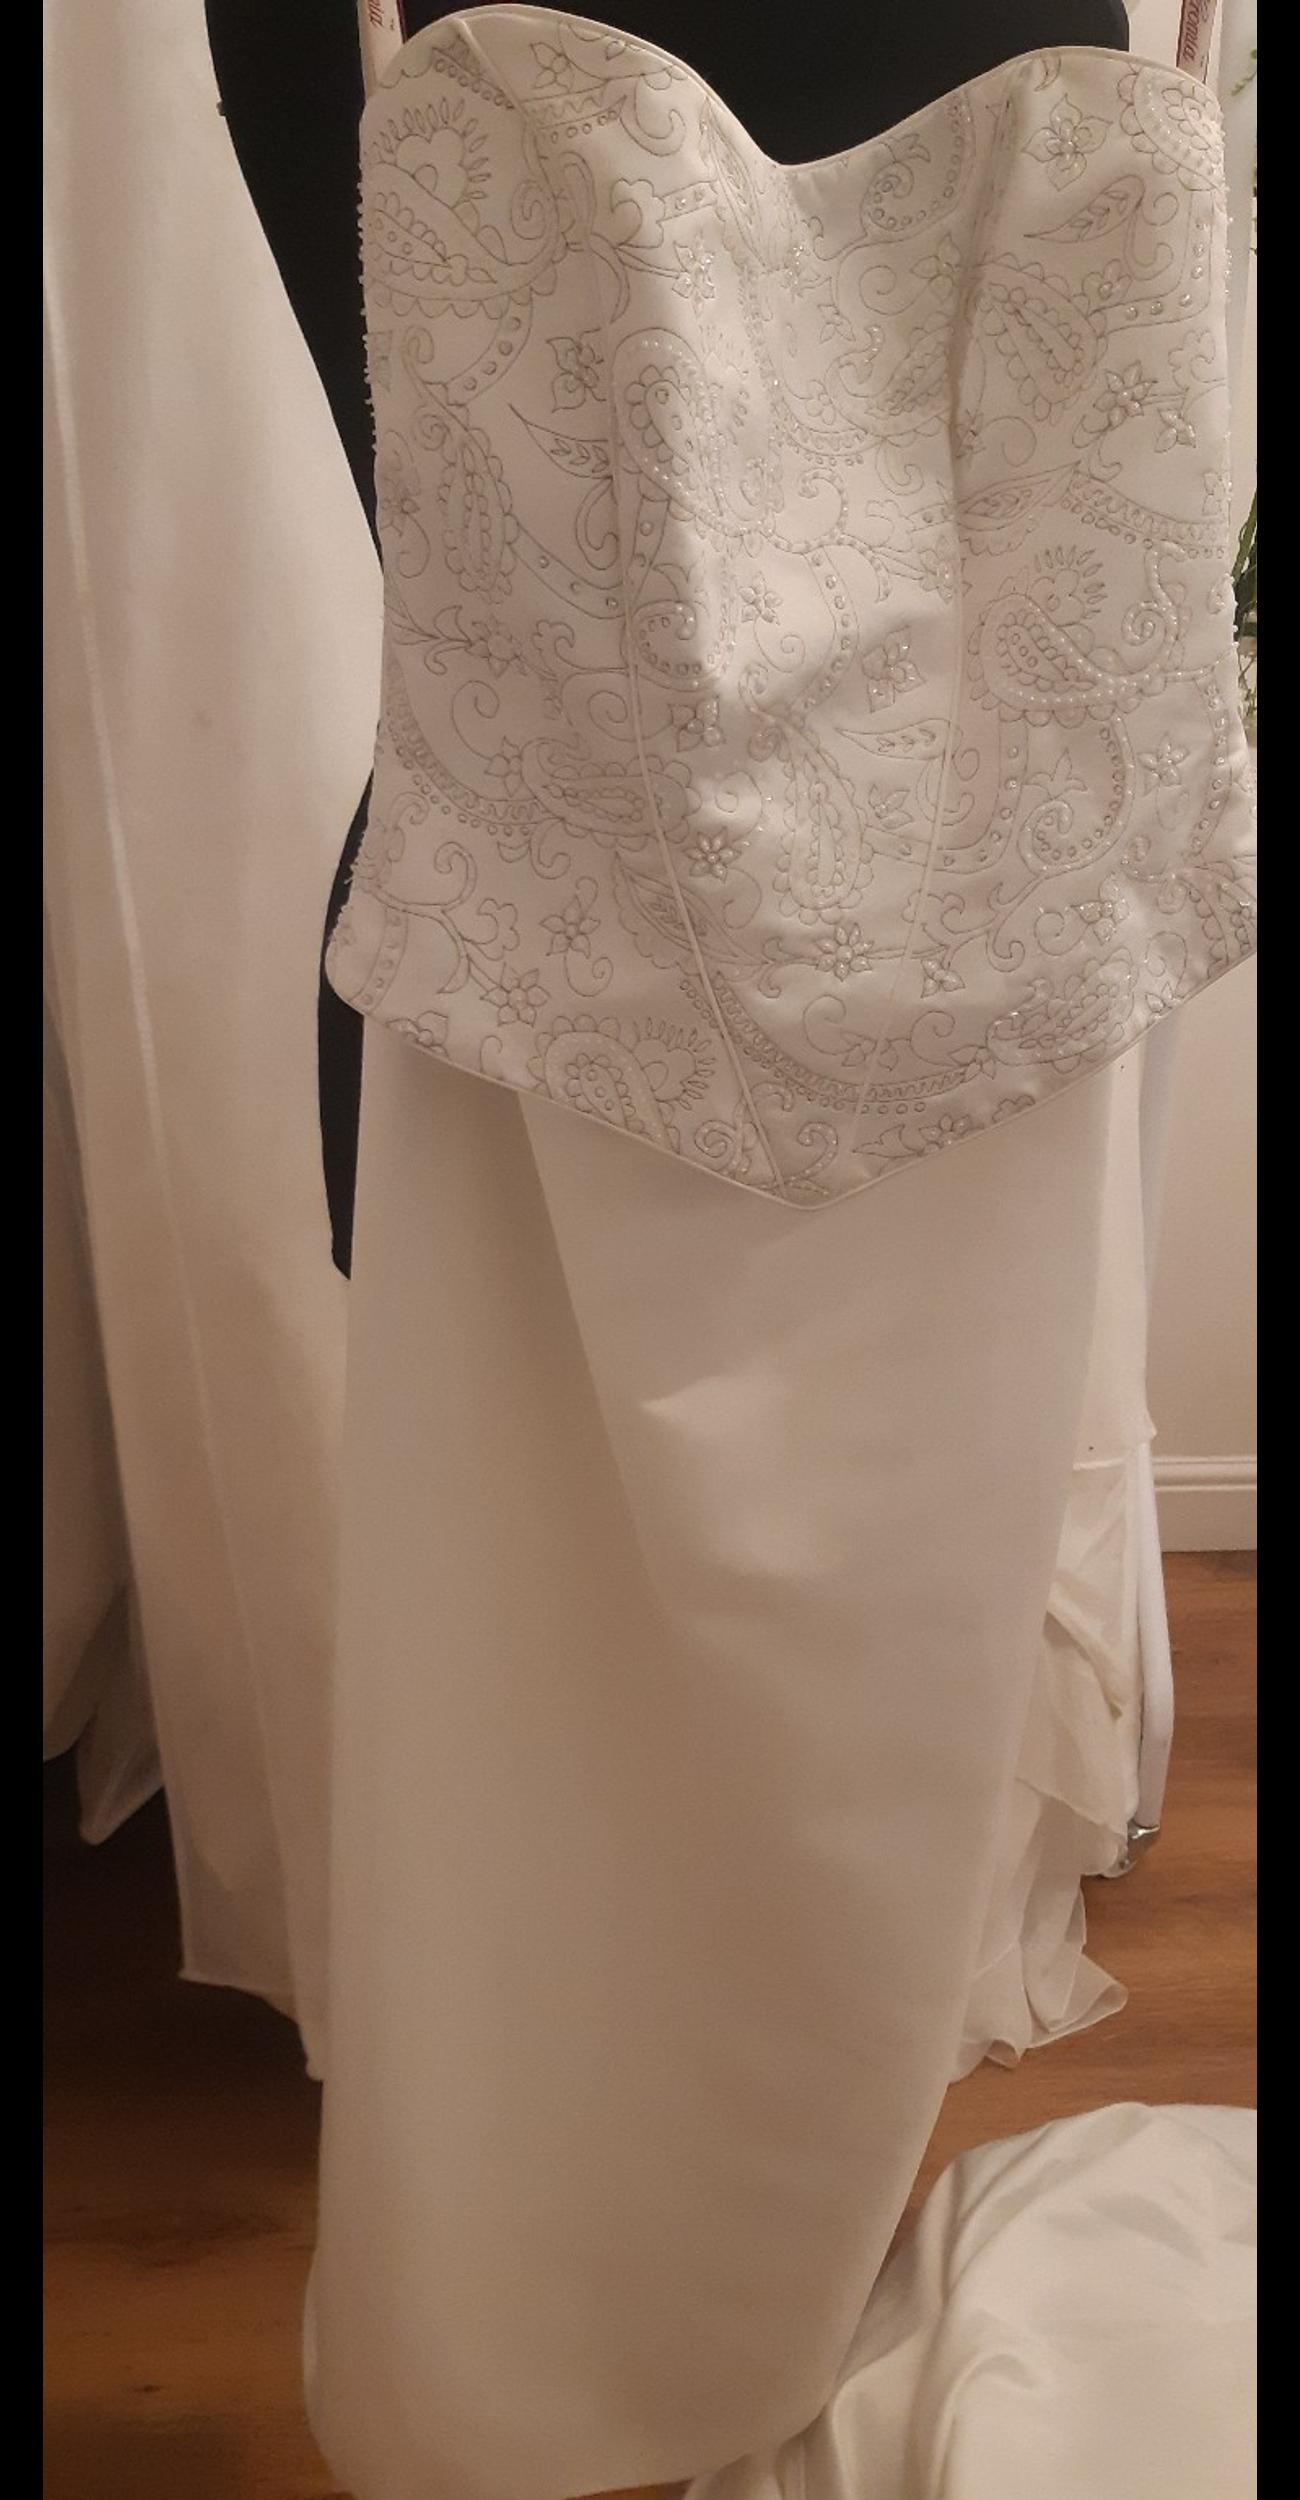 Brand new wedding dress with corset top and skirt. Stunning long train that can be held on your wrist for the after doo ;) need to come and try on to appreciate the detailed beauti of this two piece.